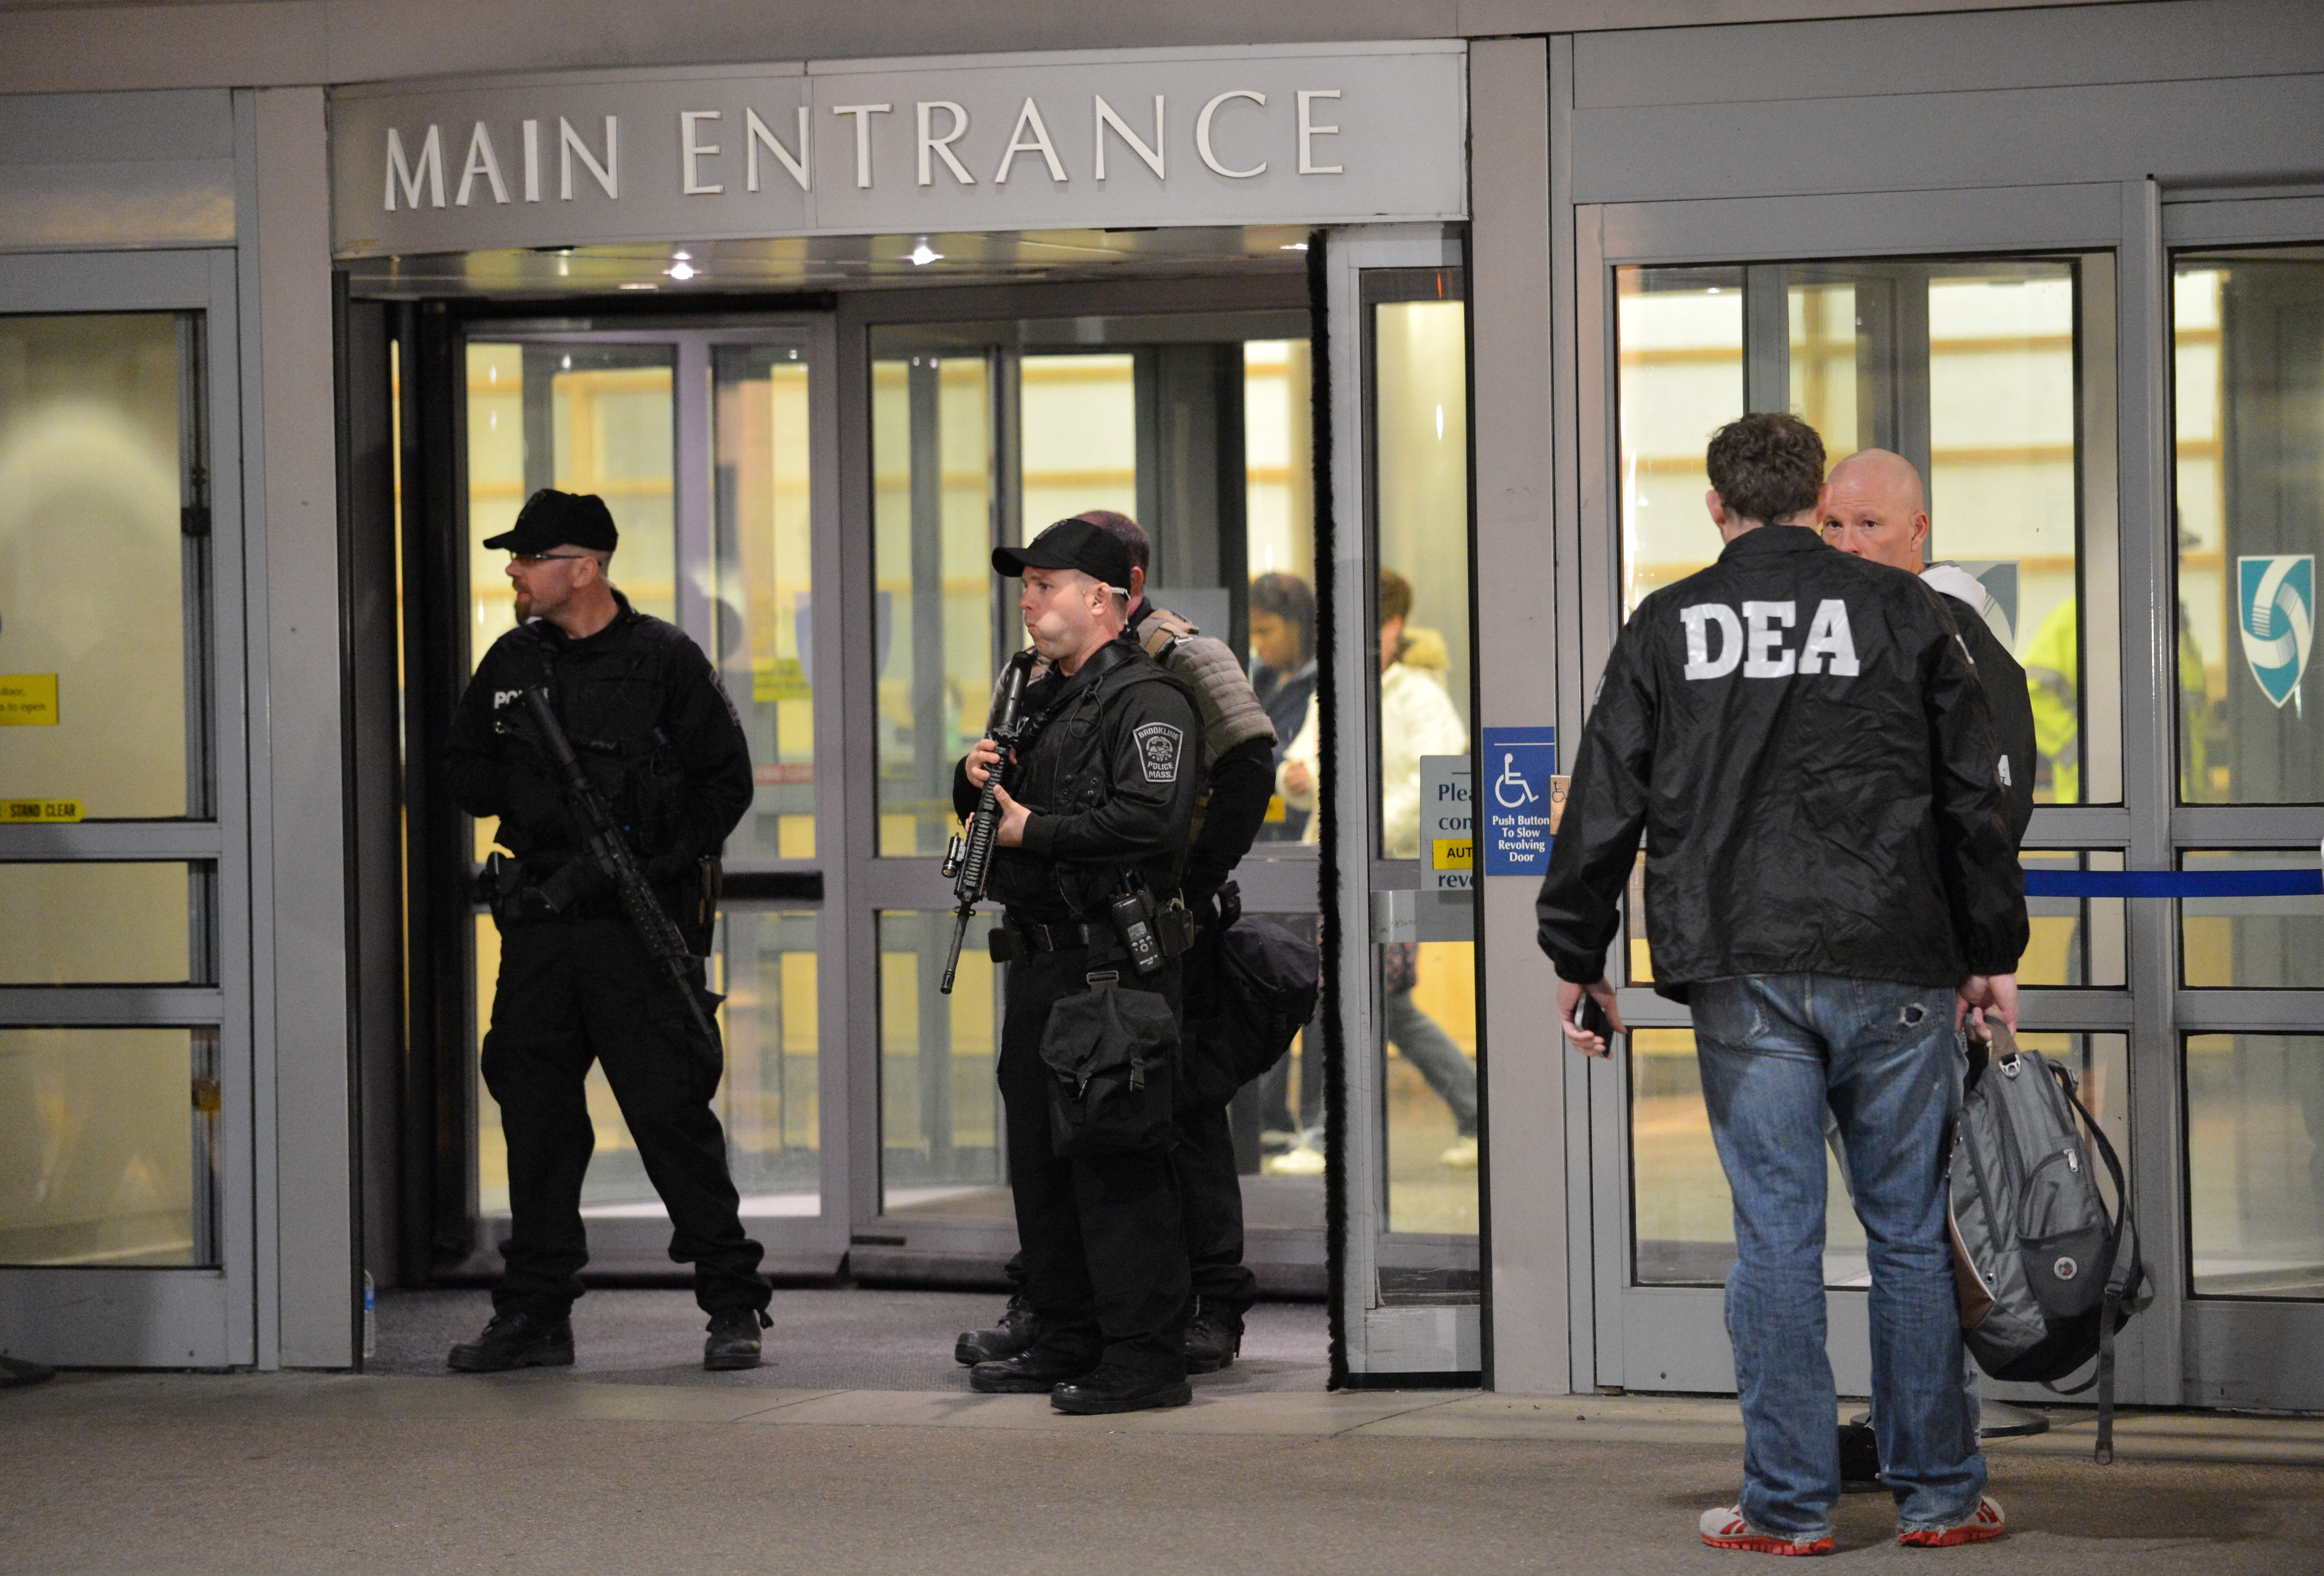 Armed police officers and Drug Enforcement Agency (DEA) agents secure the main entrance to Brigham and Women's Hospital April 15, 2013 in Boston, Massachusetts. Many who were wounded when two explosions struck near the finish line of the Boston Marathon were brought to Brigham and Women's. (STAN HONDA/AFP/Getty Images)